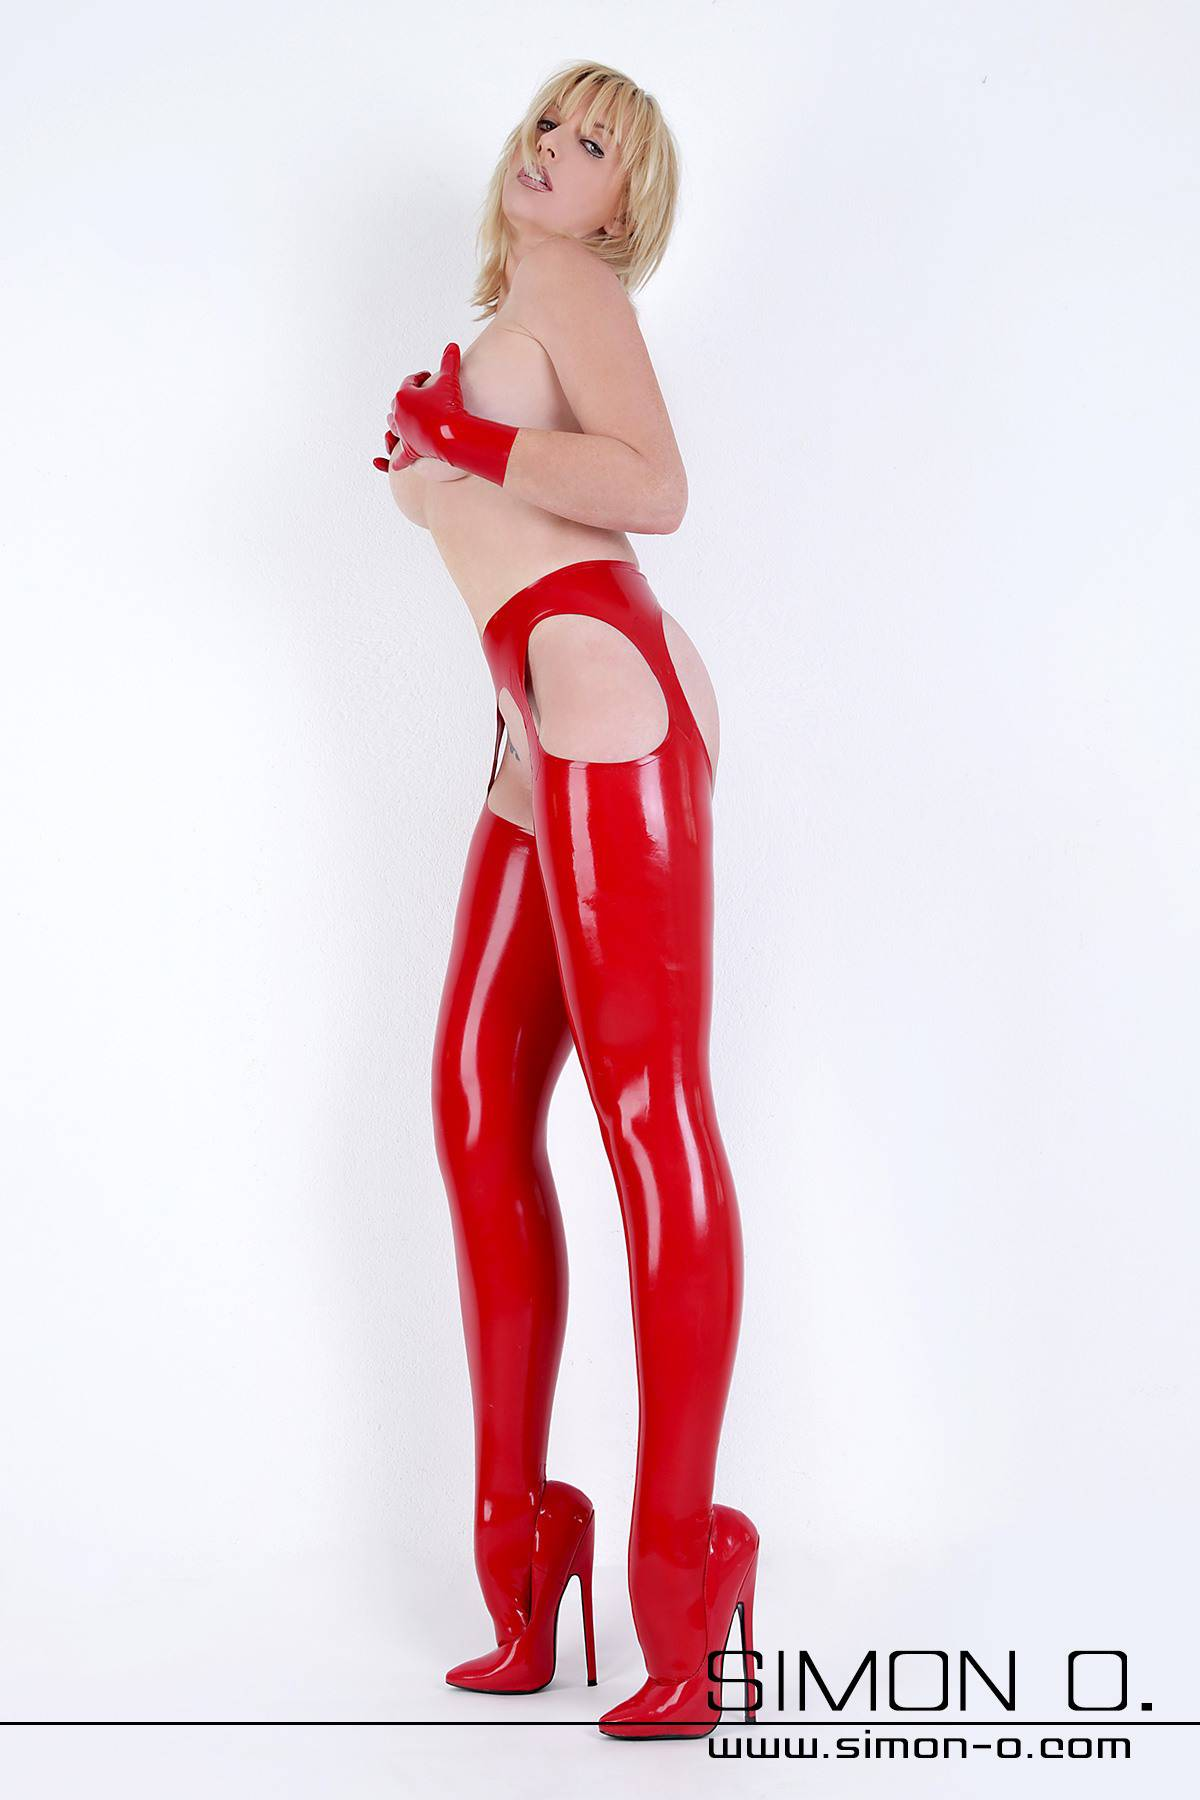 Latex stockings with built in suspenders Latex stockings with cut away sections which give the appearance of built in suspenders. This leaves the crotch and …